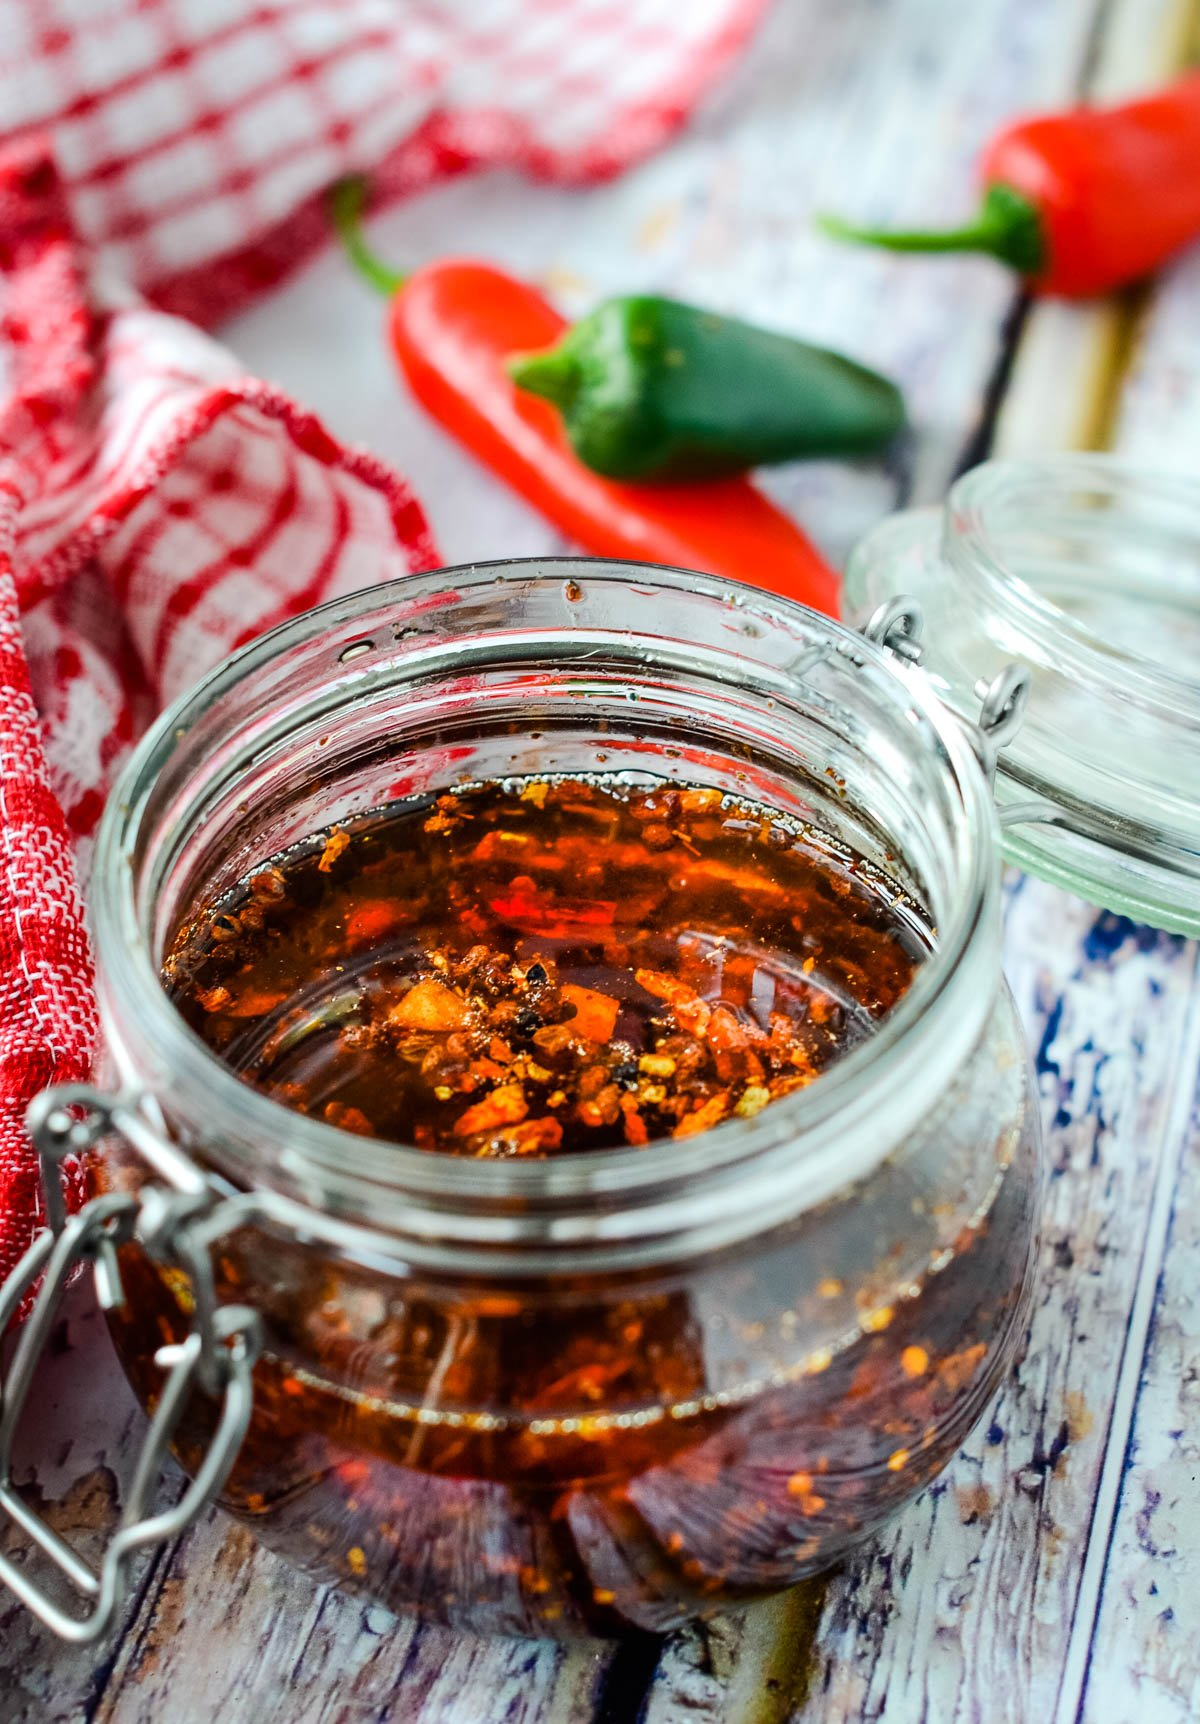 jar of crispy chilli in oil with chilli peppers behind jar